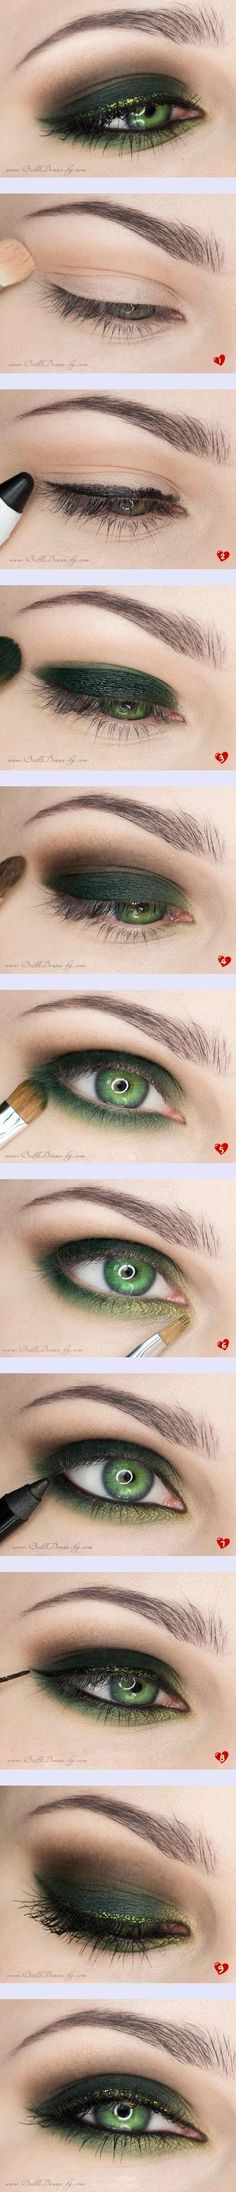 makeup for green eyes! #beautiful